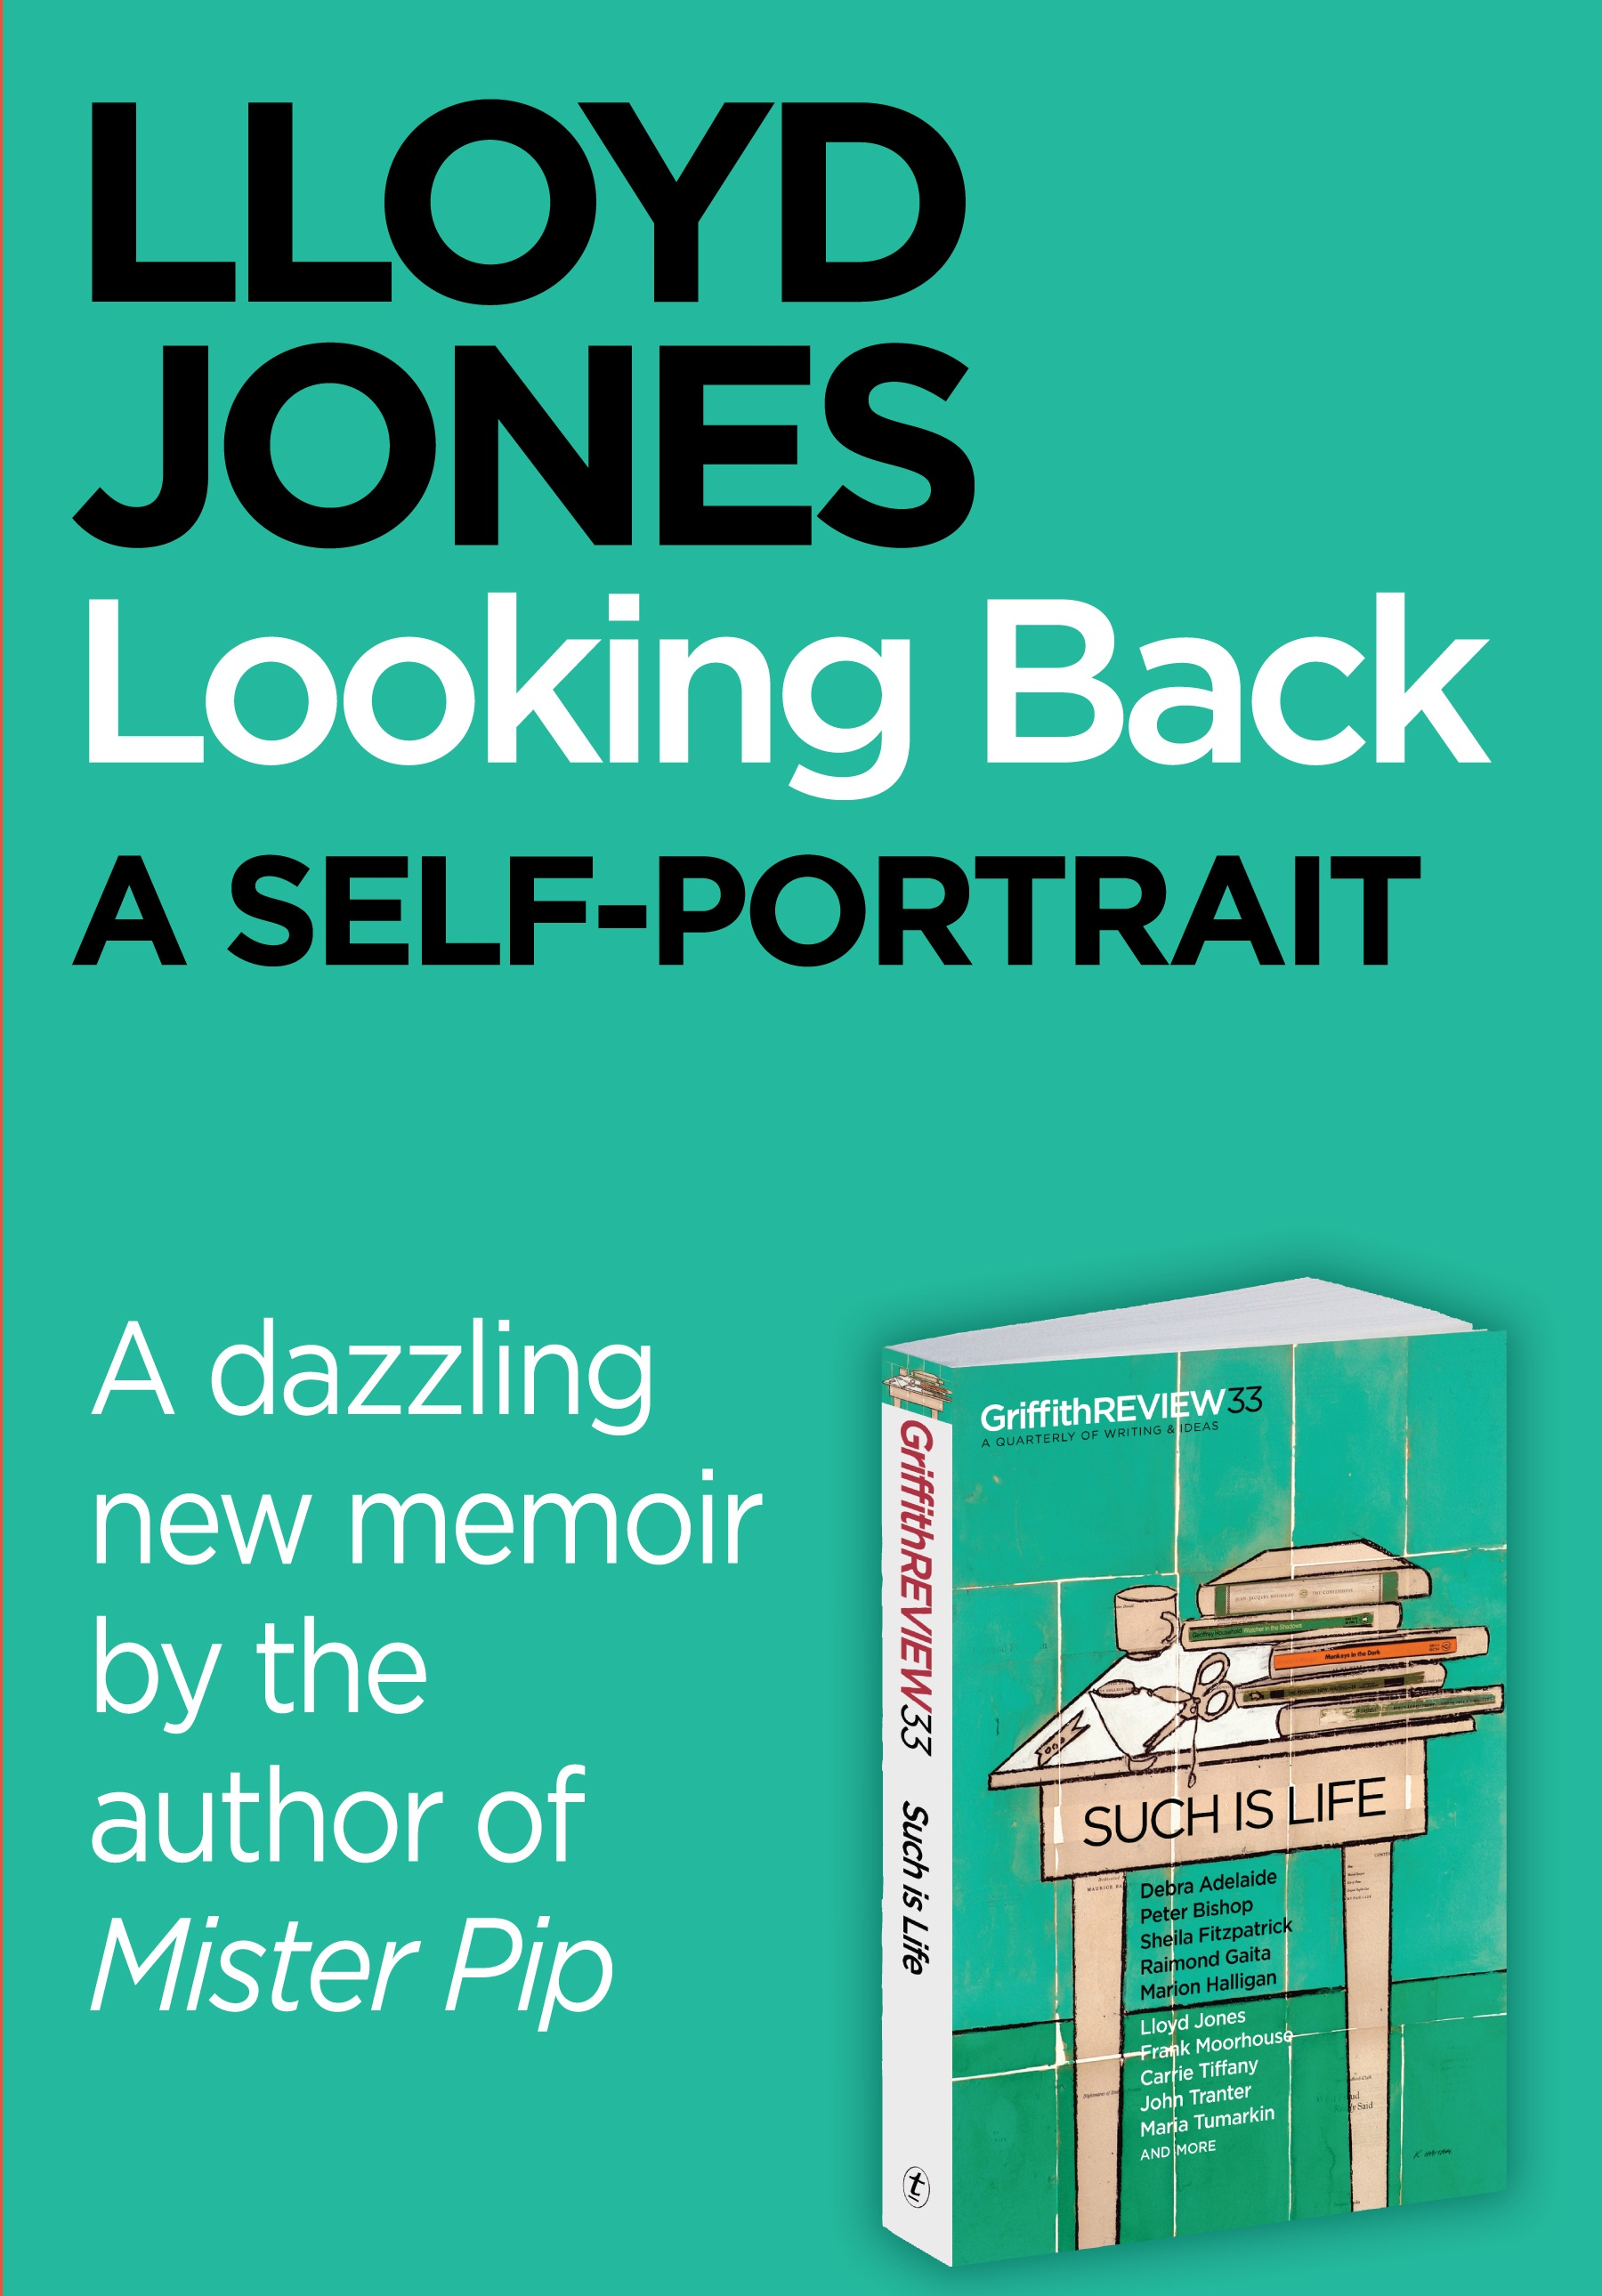 Griffith REVIEW Single: Looking Back, a self-portrait